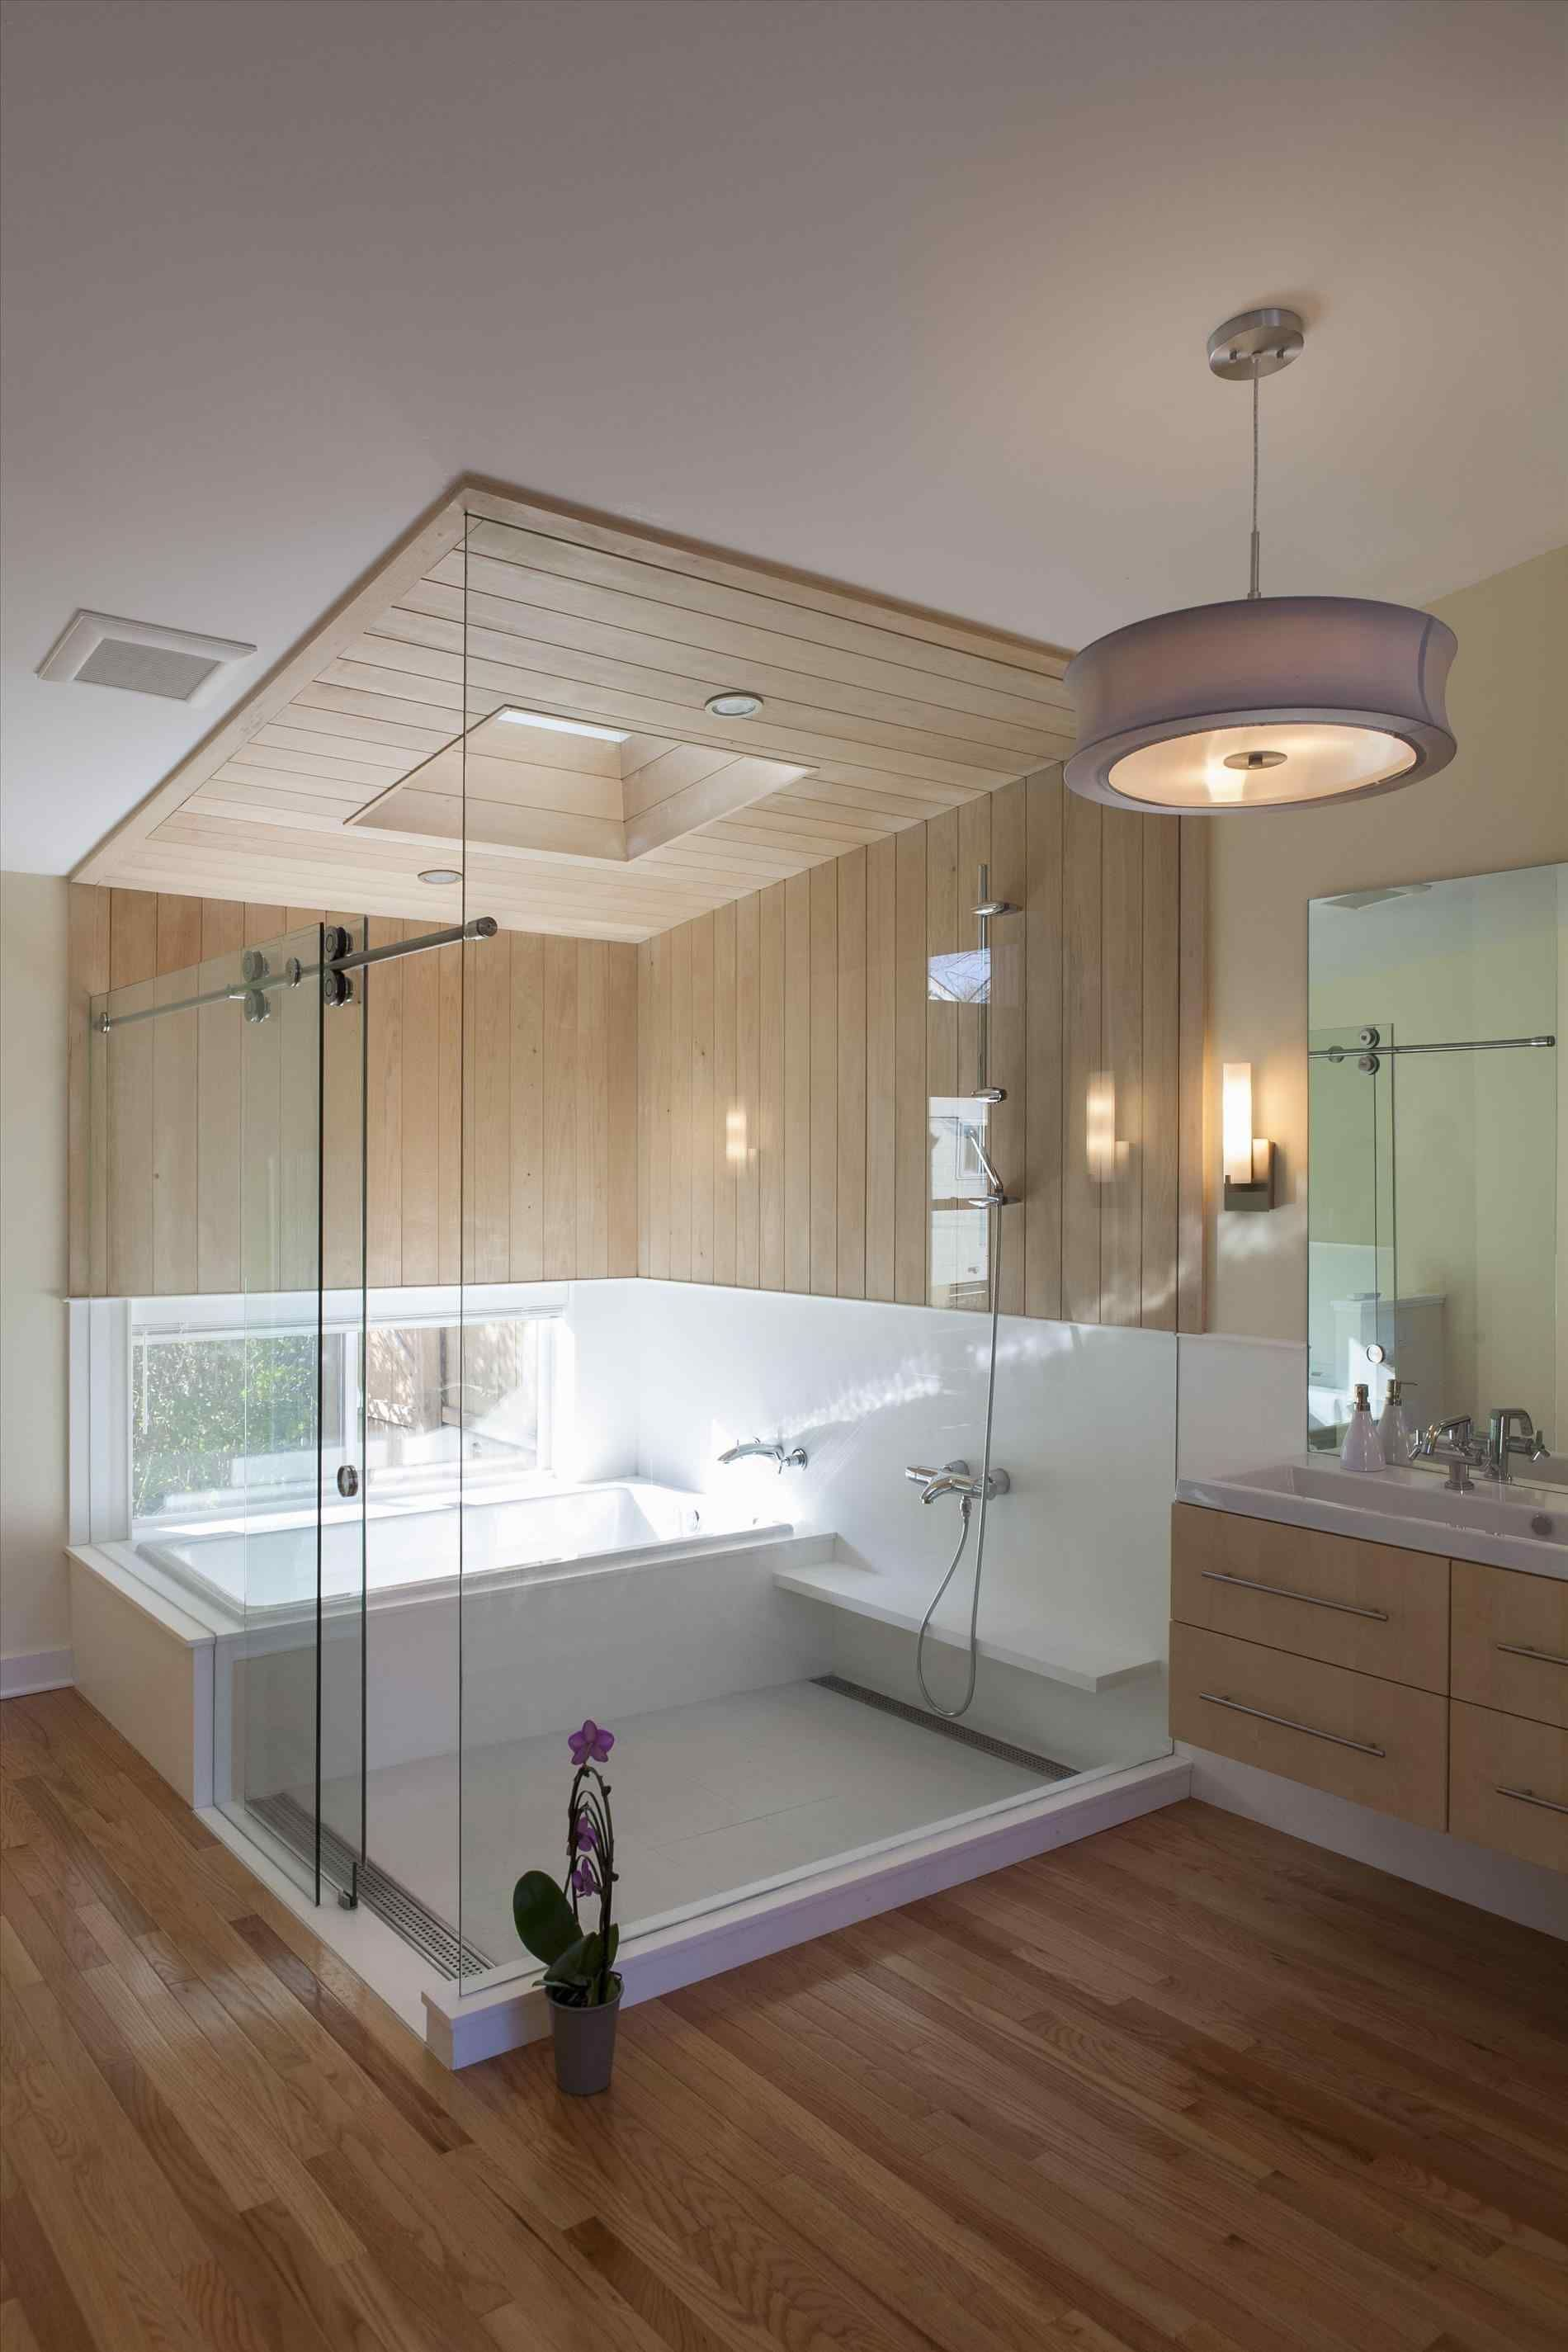 Find the best bathroom ideas designs & inspiration to match your style Browse through images of bathroom decor & colours to create your perfect home